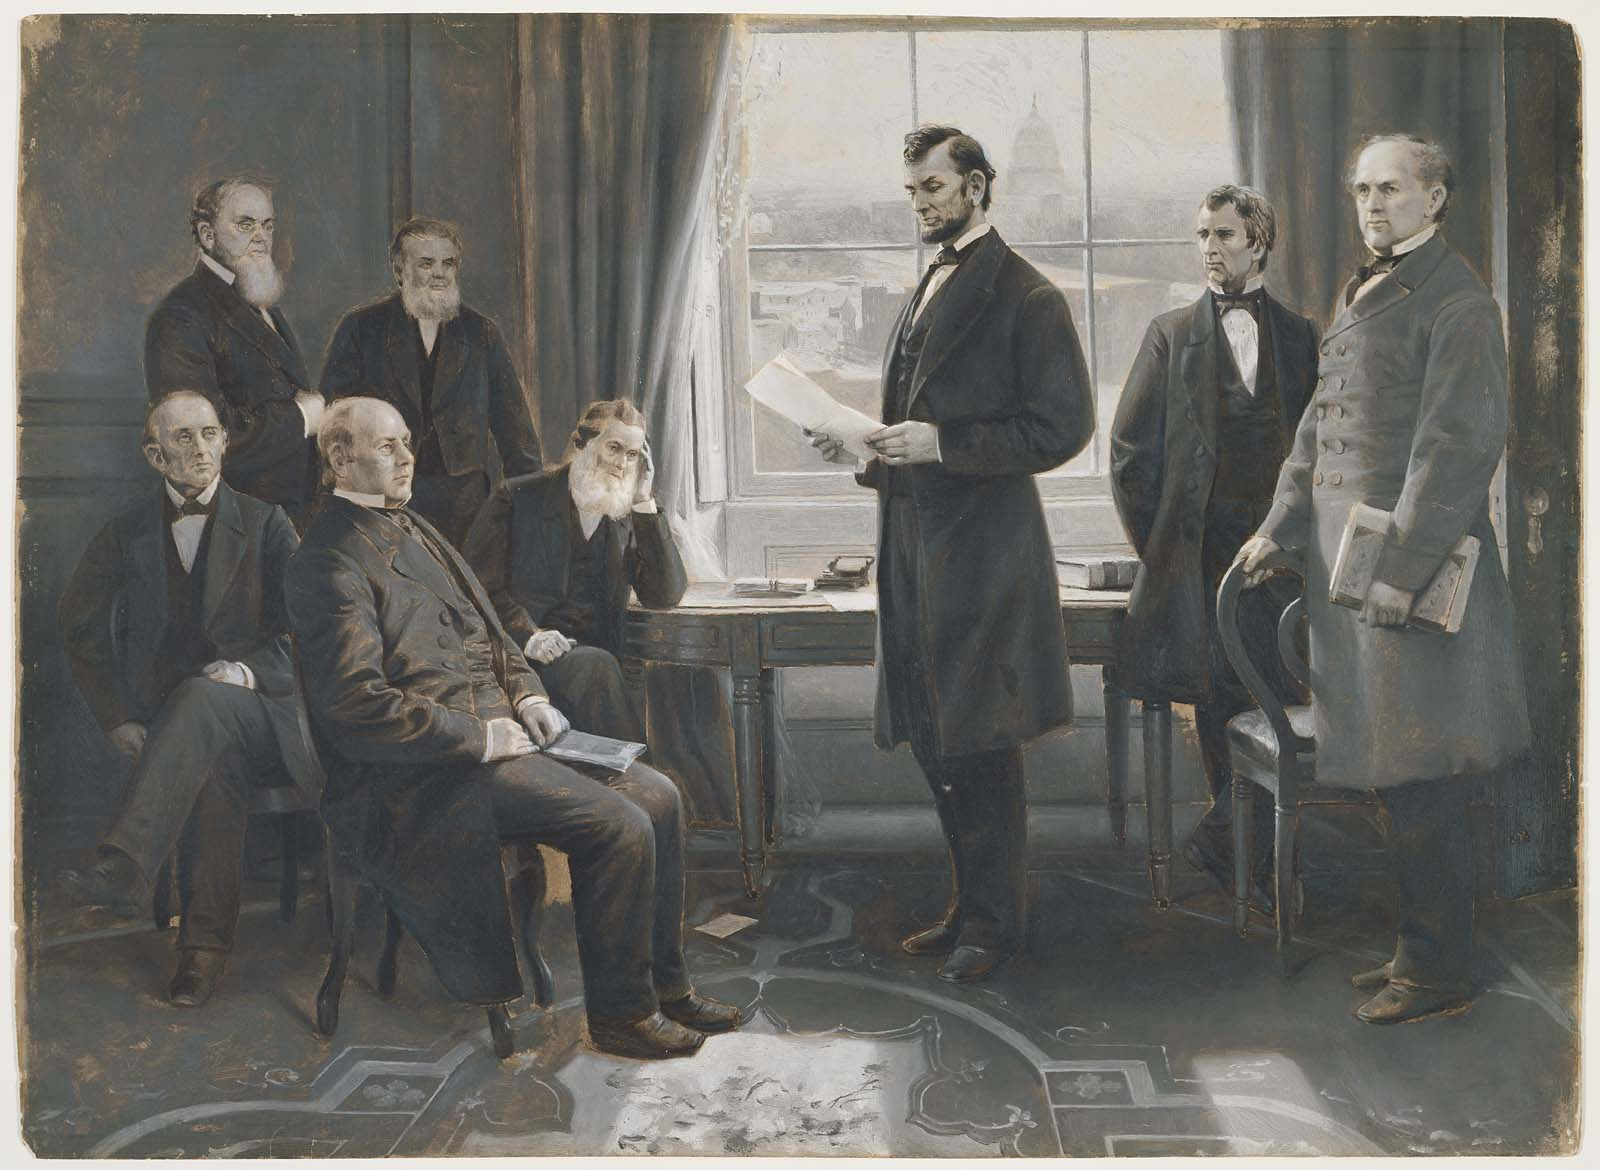 Lincoln Reading The Emancipation Proclamation To His